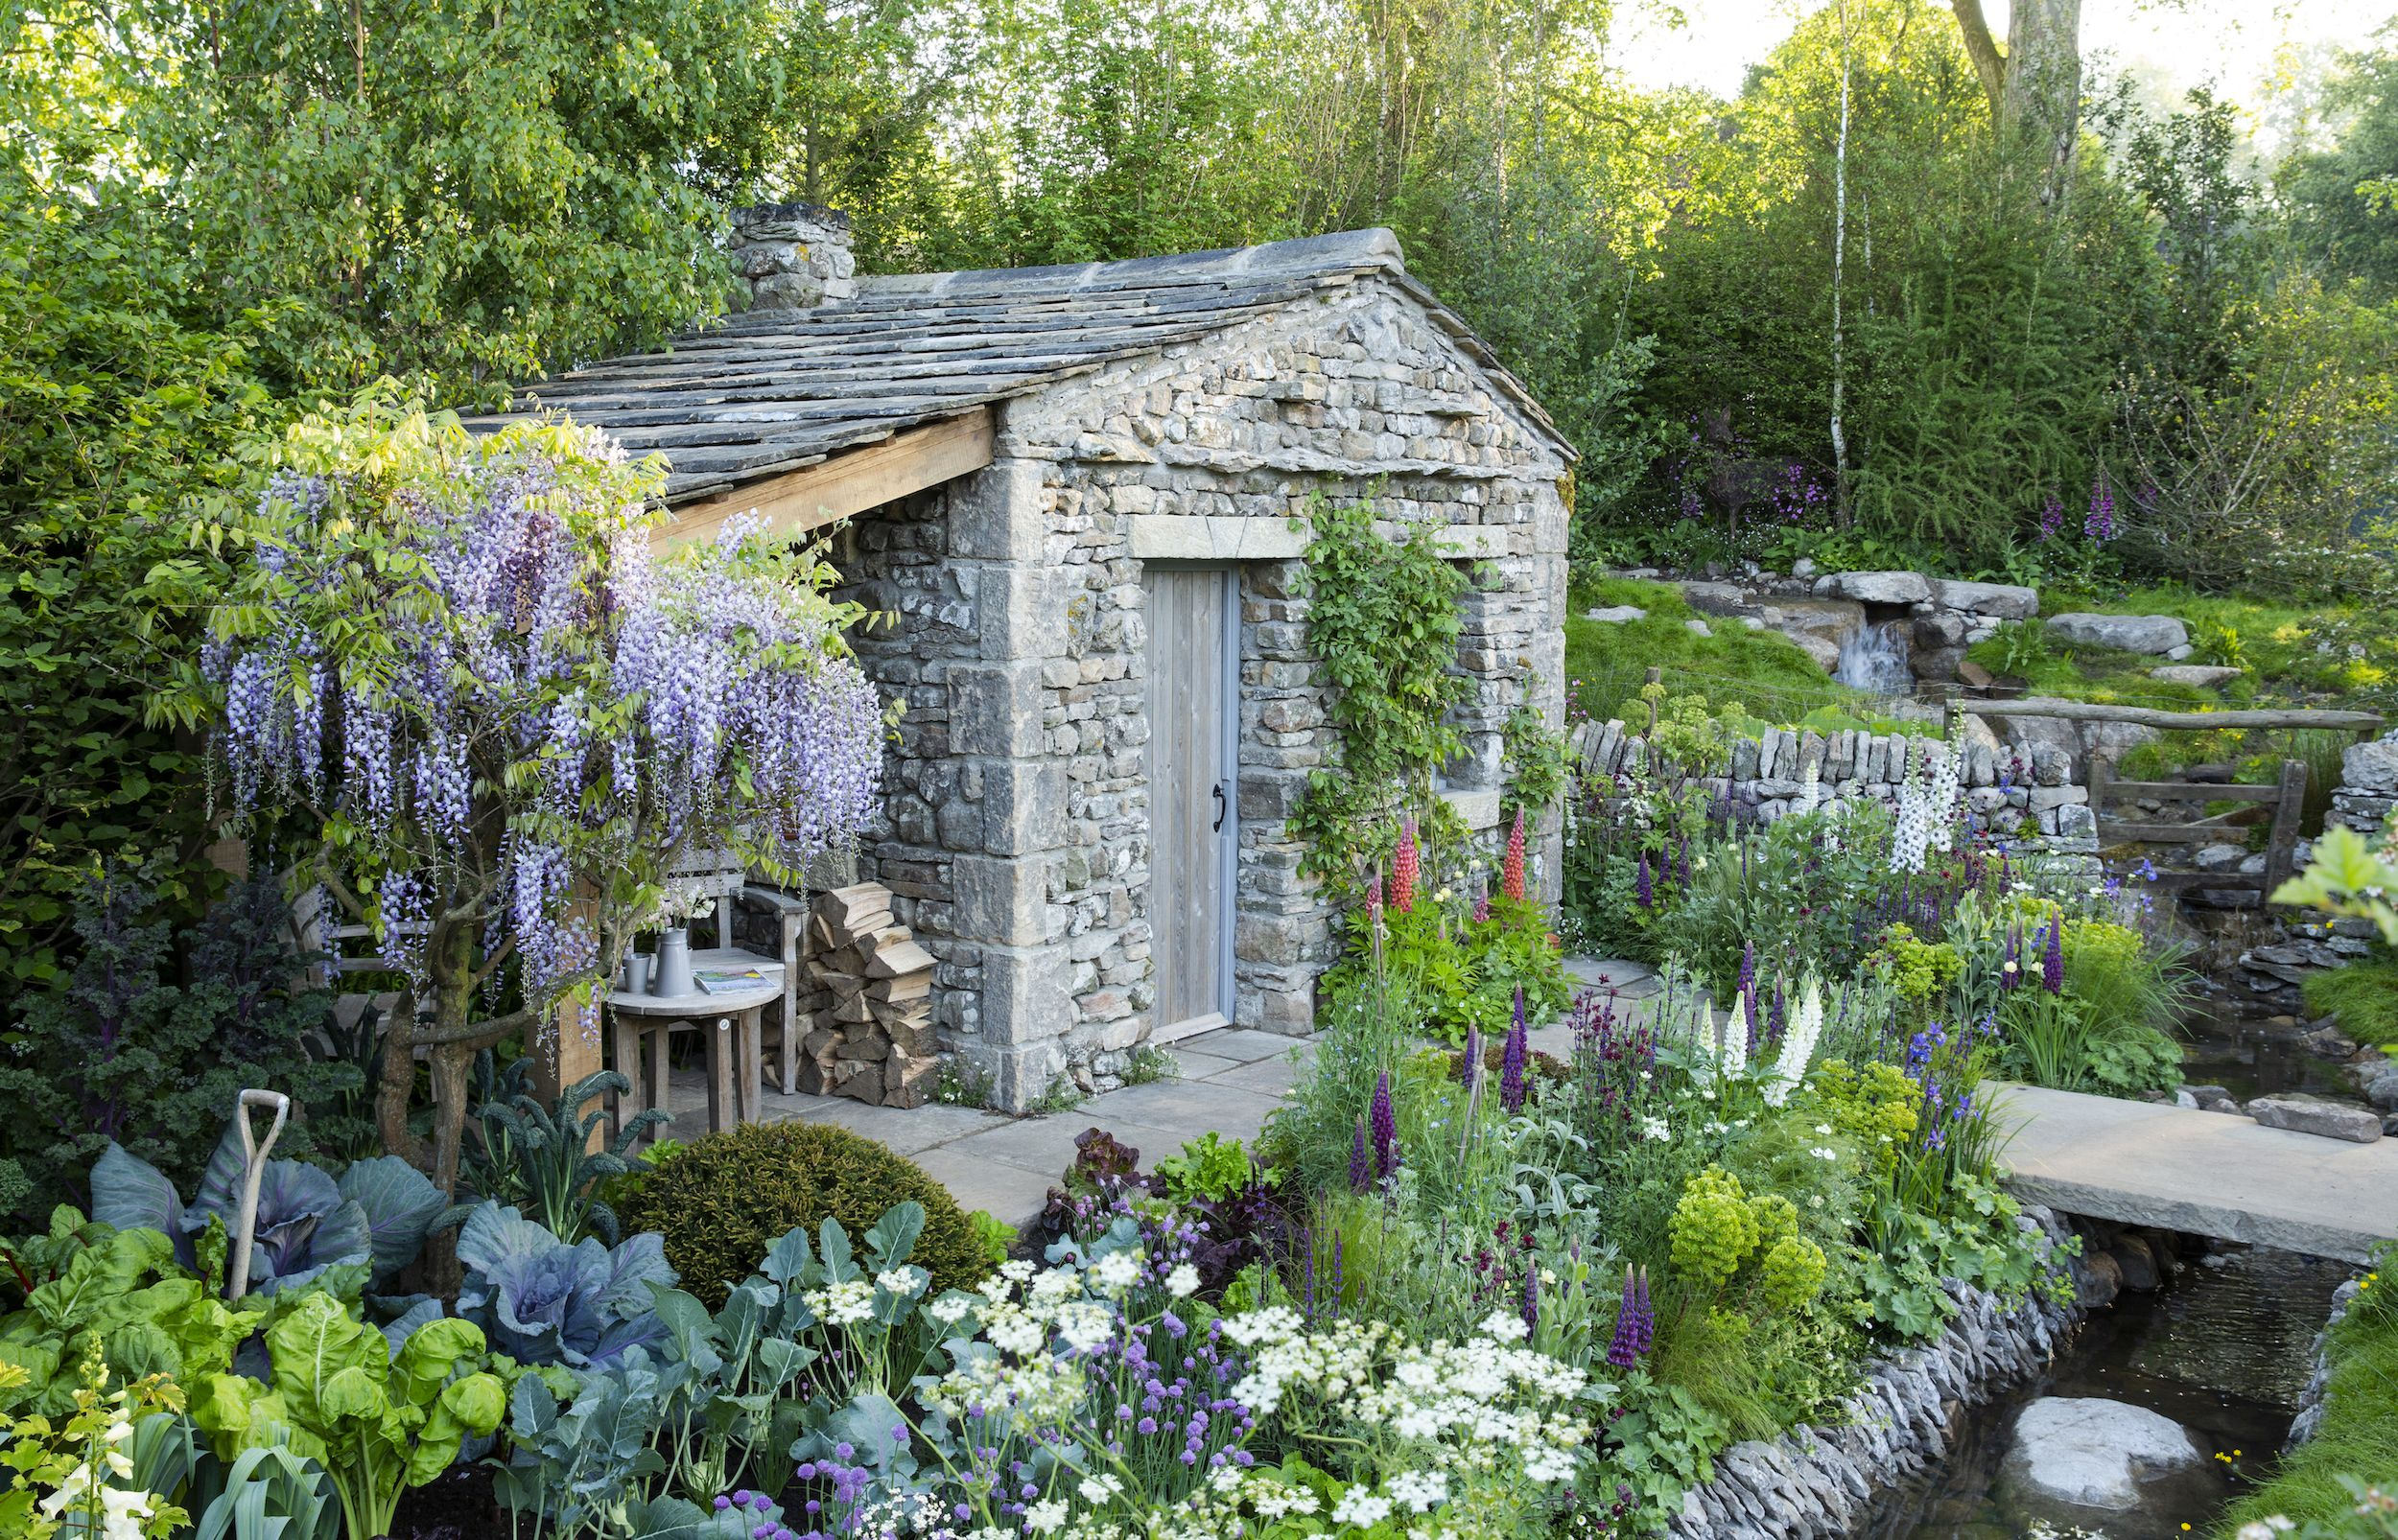 Exclusive interview: Mark Gregory's Welcome To Yorkshire Garden wins People's Choice Garden of the Decade